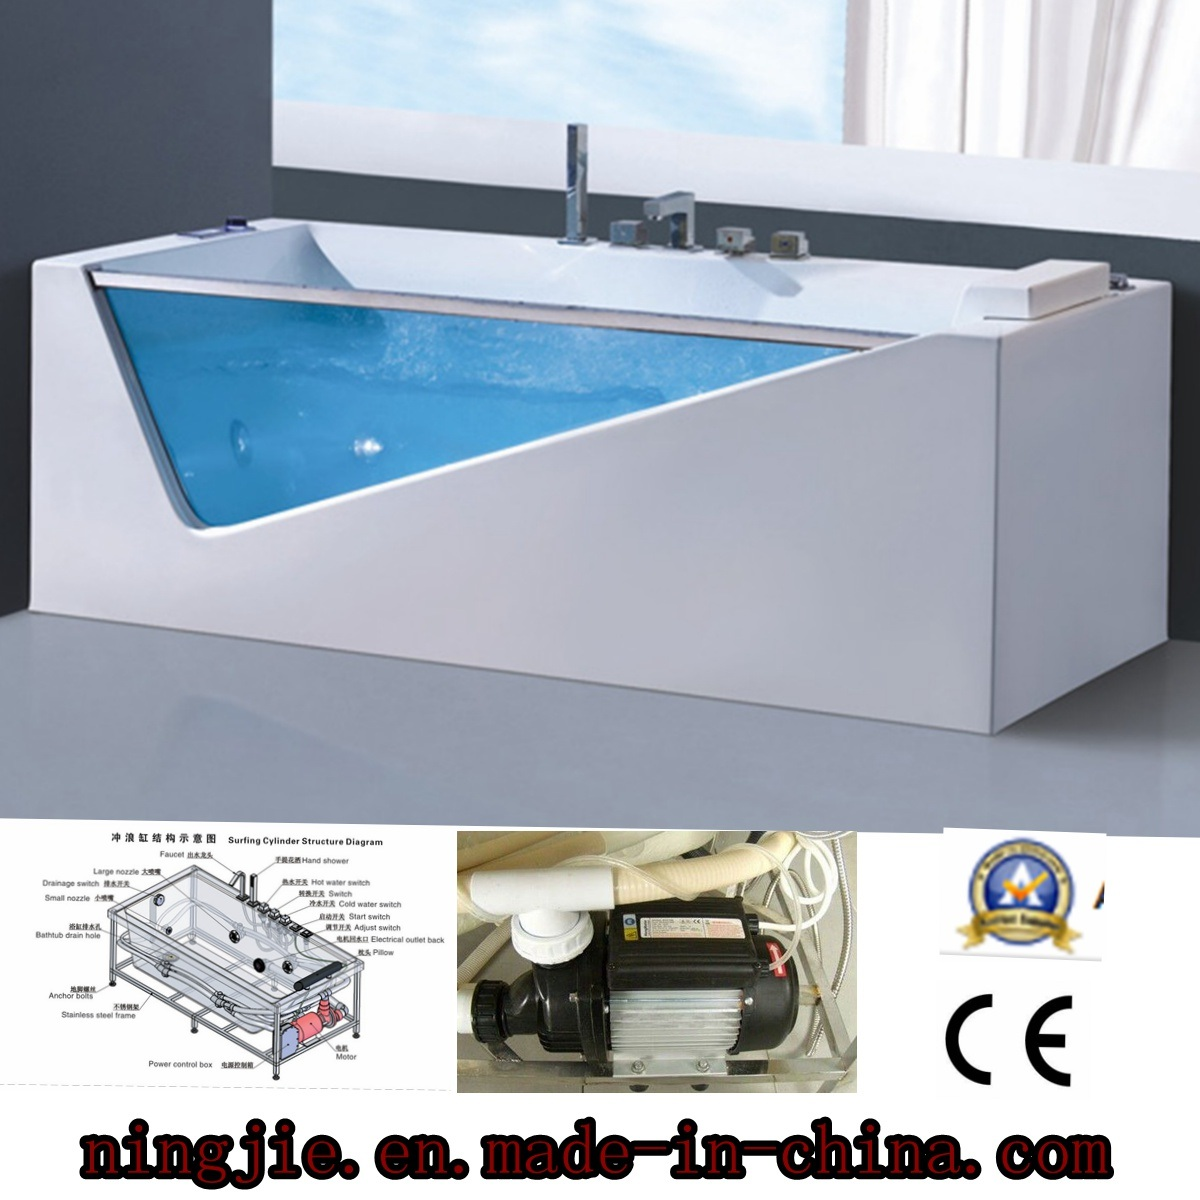 China Acrylic Sanitary Ware LED Bubble Whirpool Massage Bath Tub ...